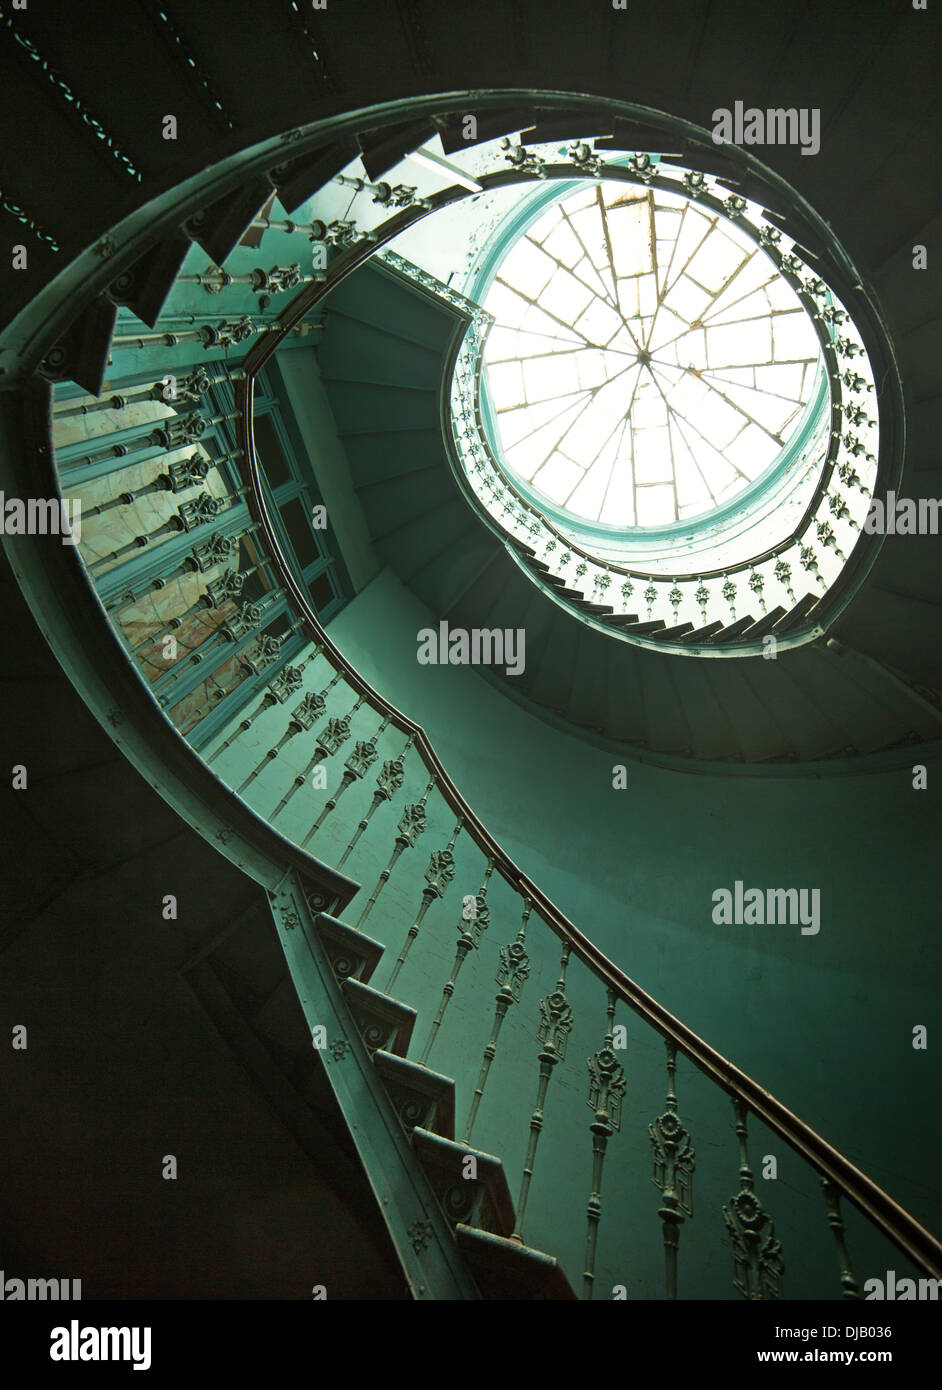 Art shot of old wooden spiral stairs - Stock Image